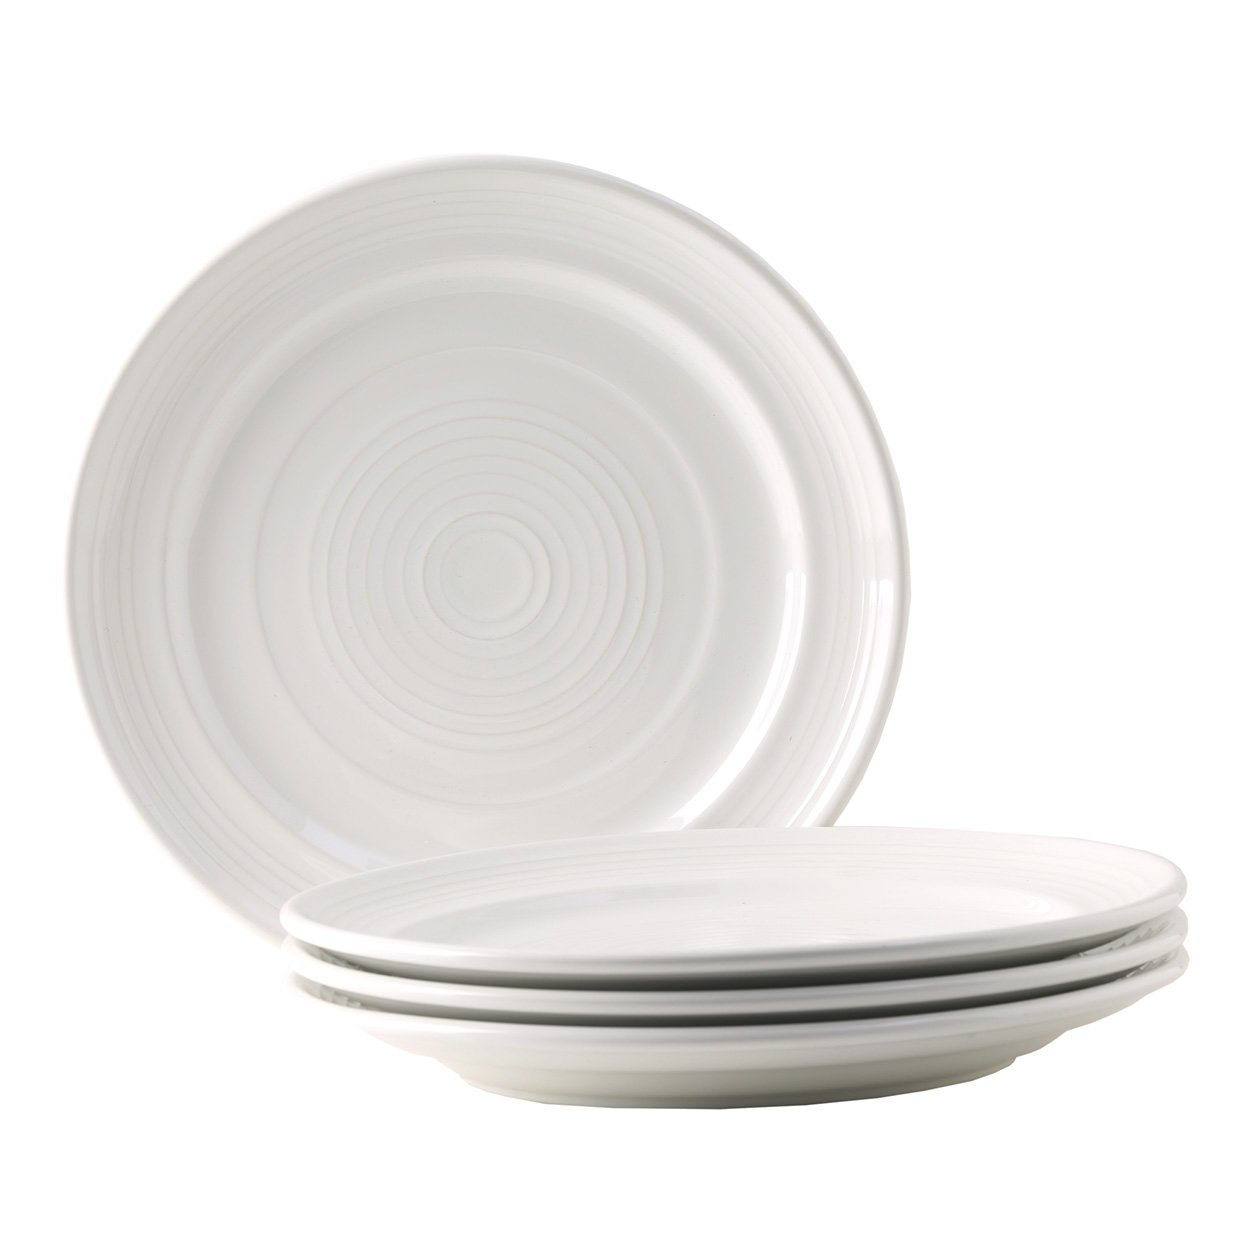 Tuxton Home Concentrix Dinner Plate (Set of 4), 10 1/2'', White; Heavy Duty; Chip Resistant; Lead and Cadmium Free; Freezer to Oven Safe up to 500F